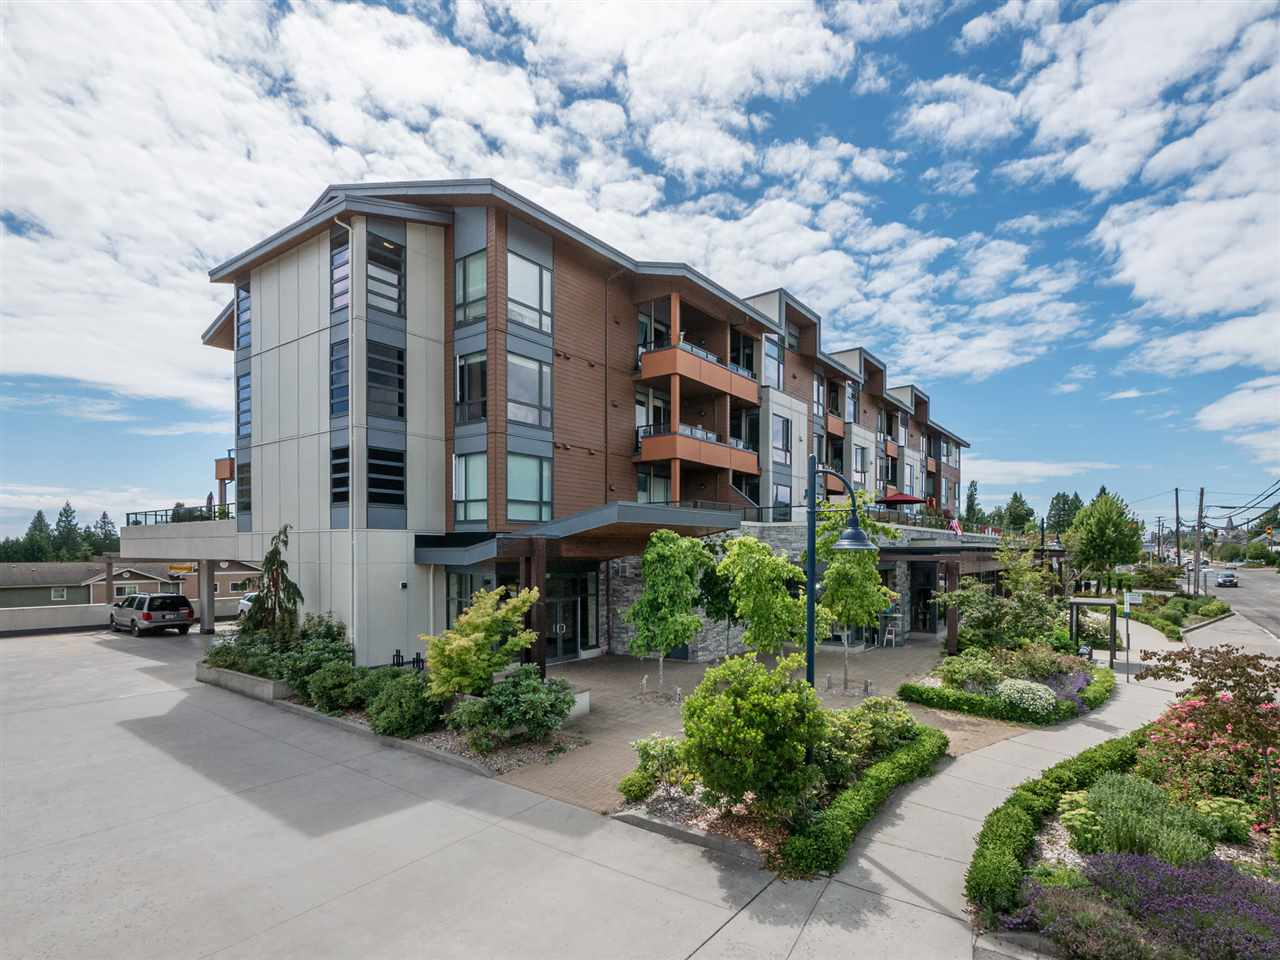 210 210 875 GIBSONS WAY - Gibsons & Area Apartment/Condo for sale, 2 Bedrooms (R2542139) - #3